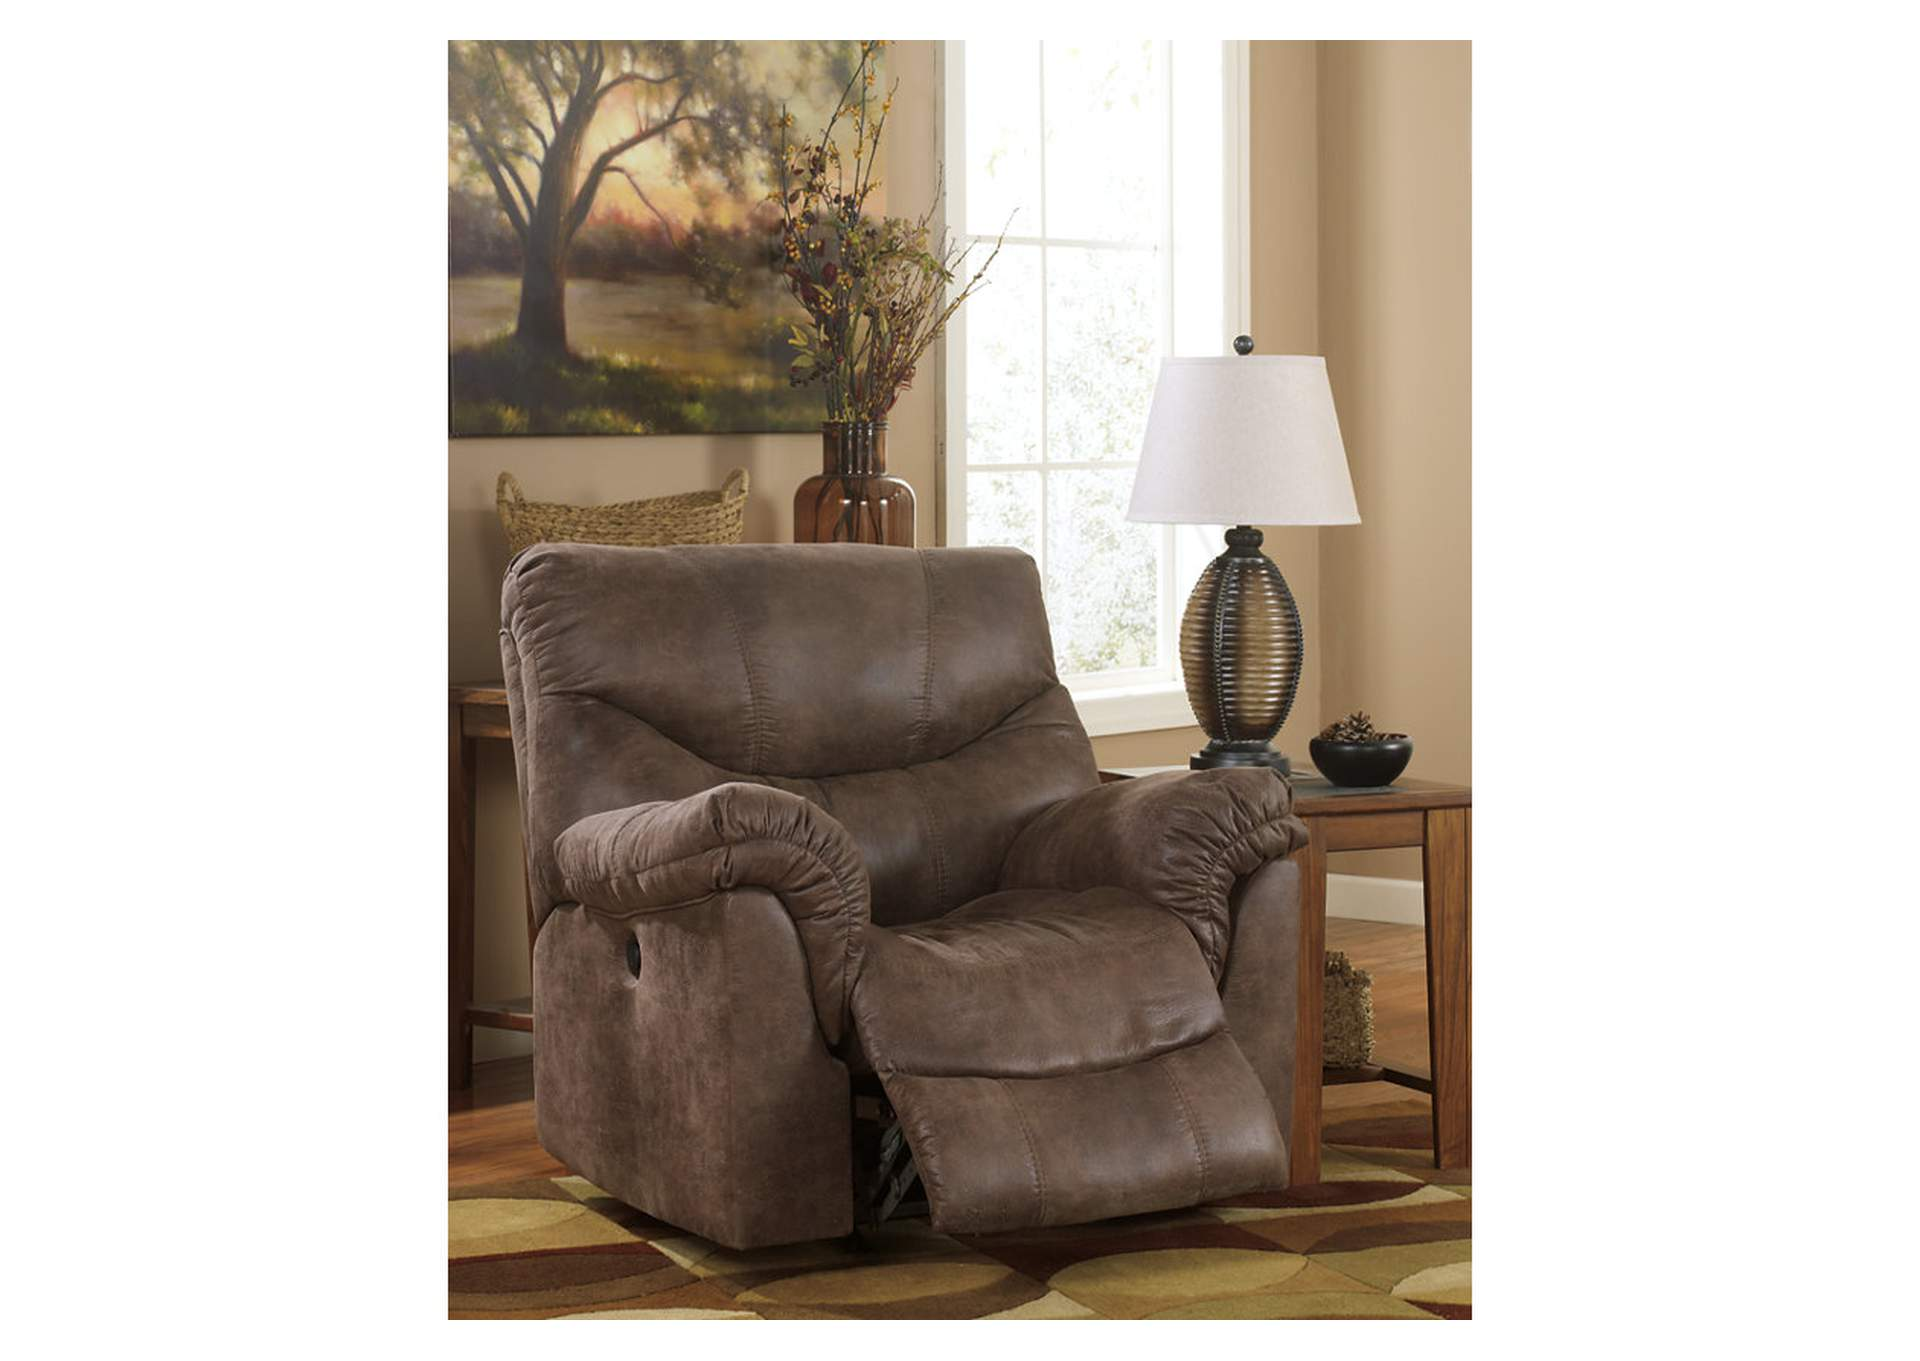 Alzena Gunsmoke Rocker Recliner,Signature Design By Ashley